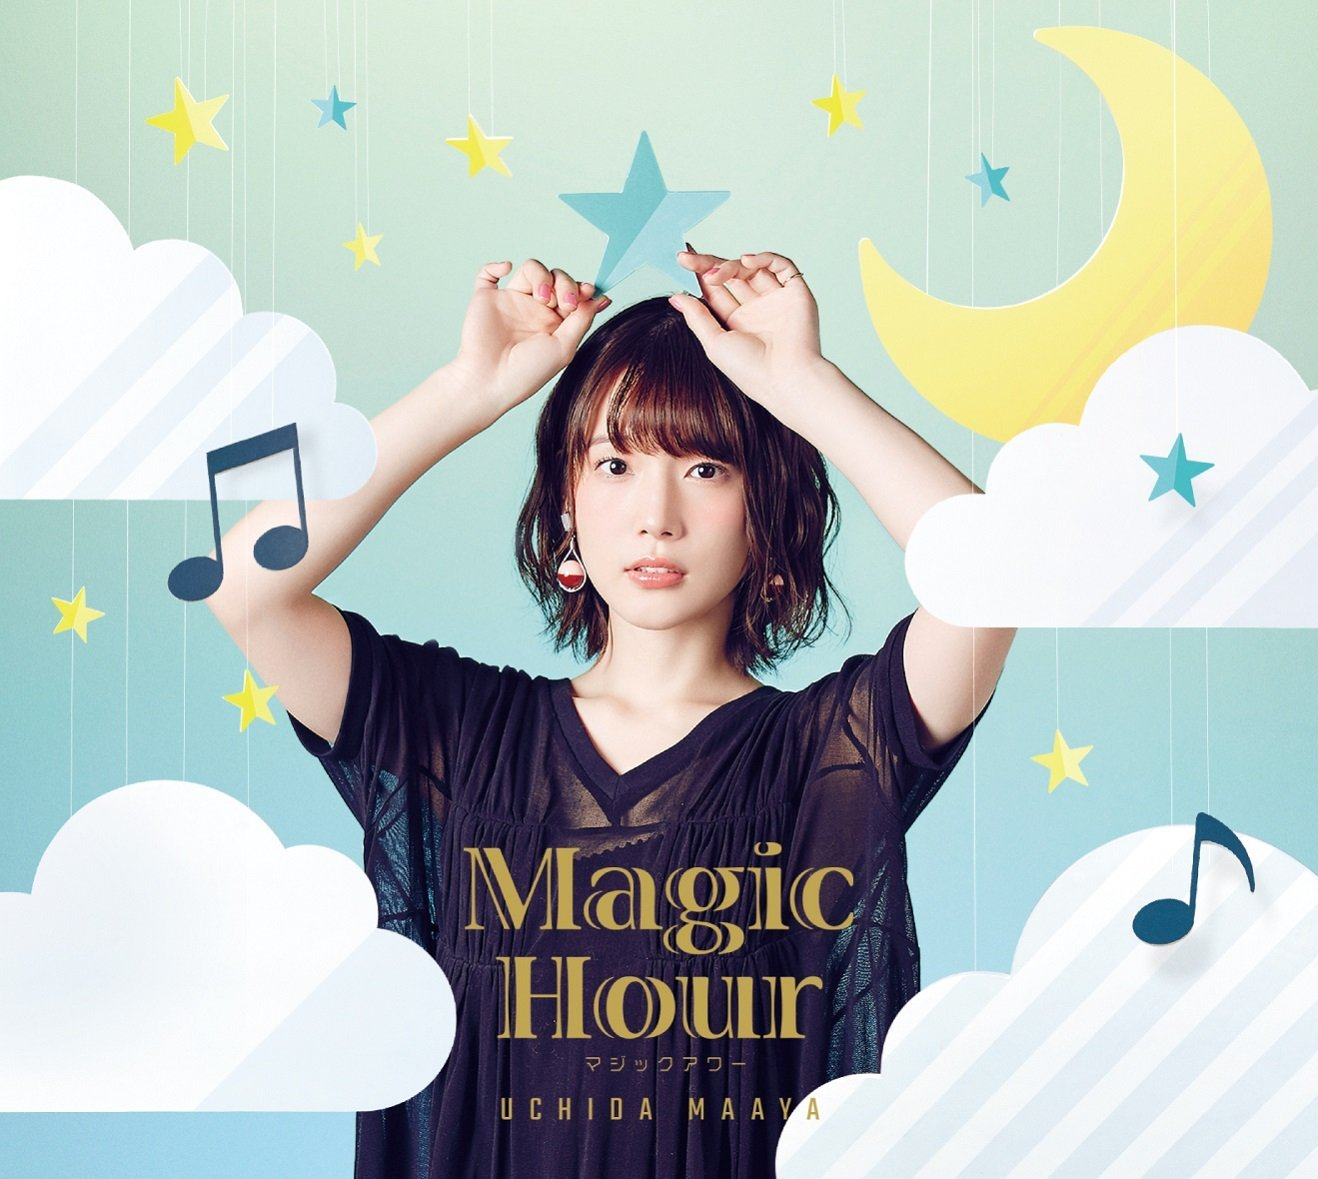 20180523.0939.04 Maaya Uchida - Magic Hour cover 1.jpg